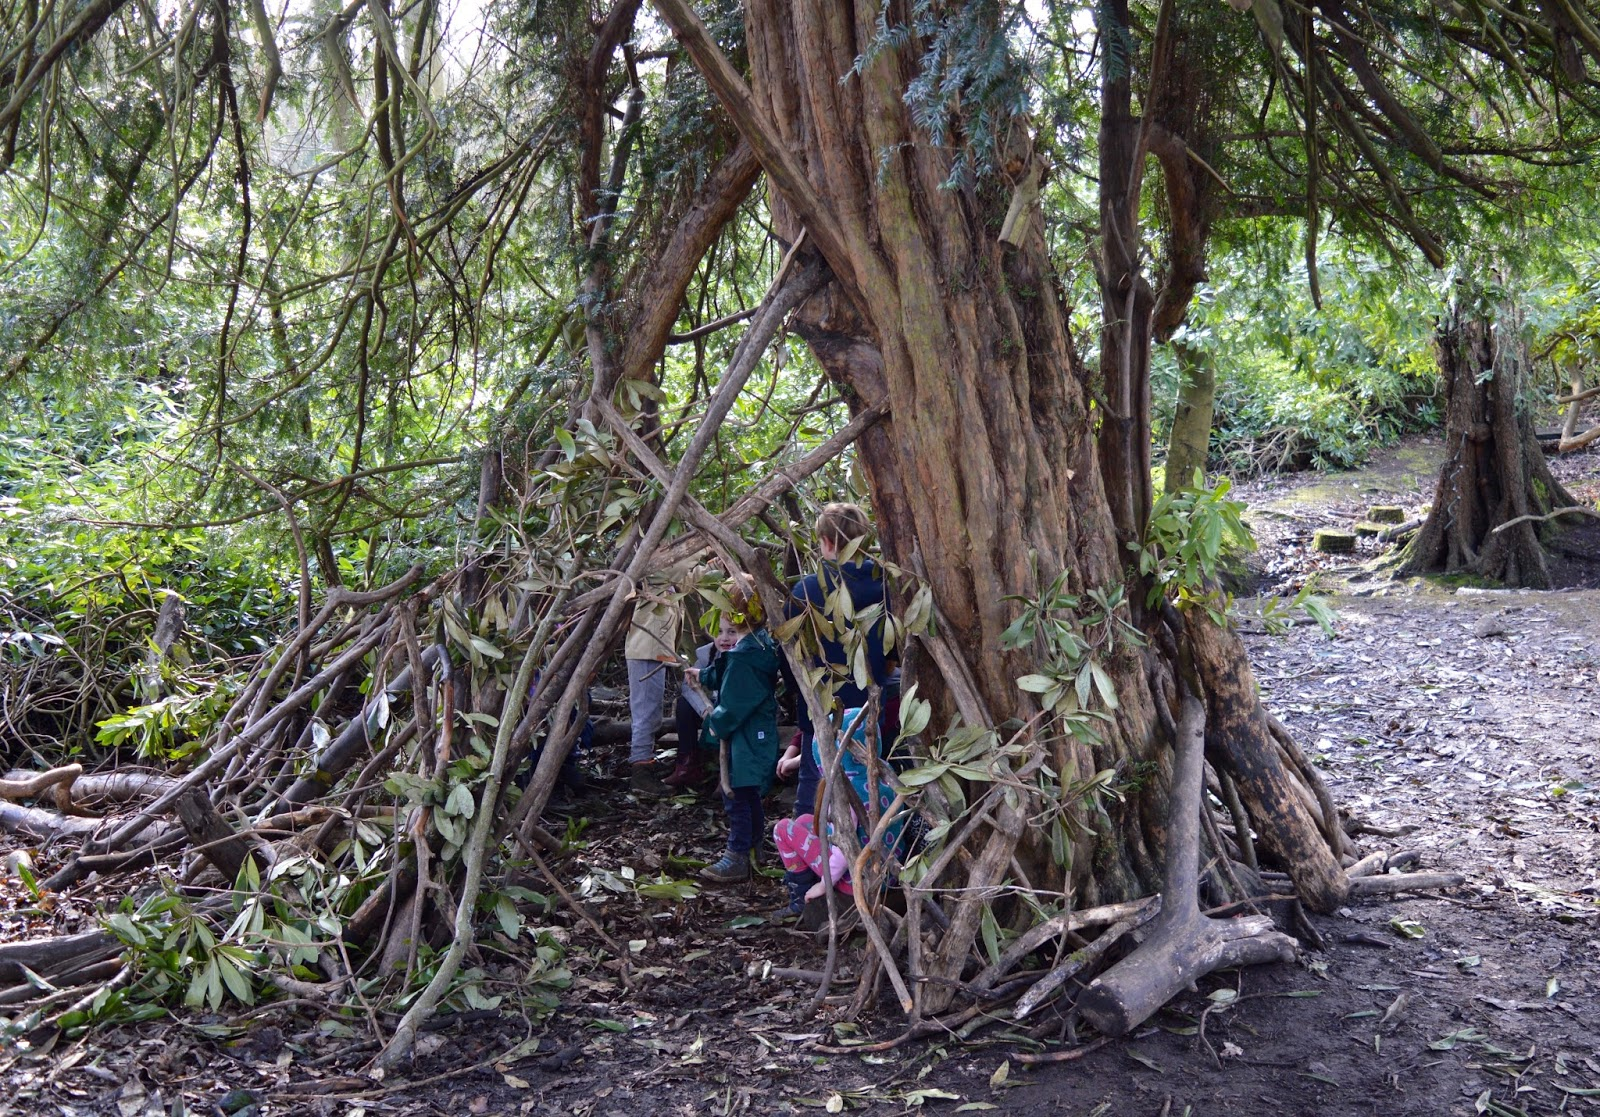 Beamish Wild   School Holiday Club & Activities in County Durham   North East England - woodland den